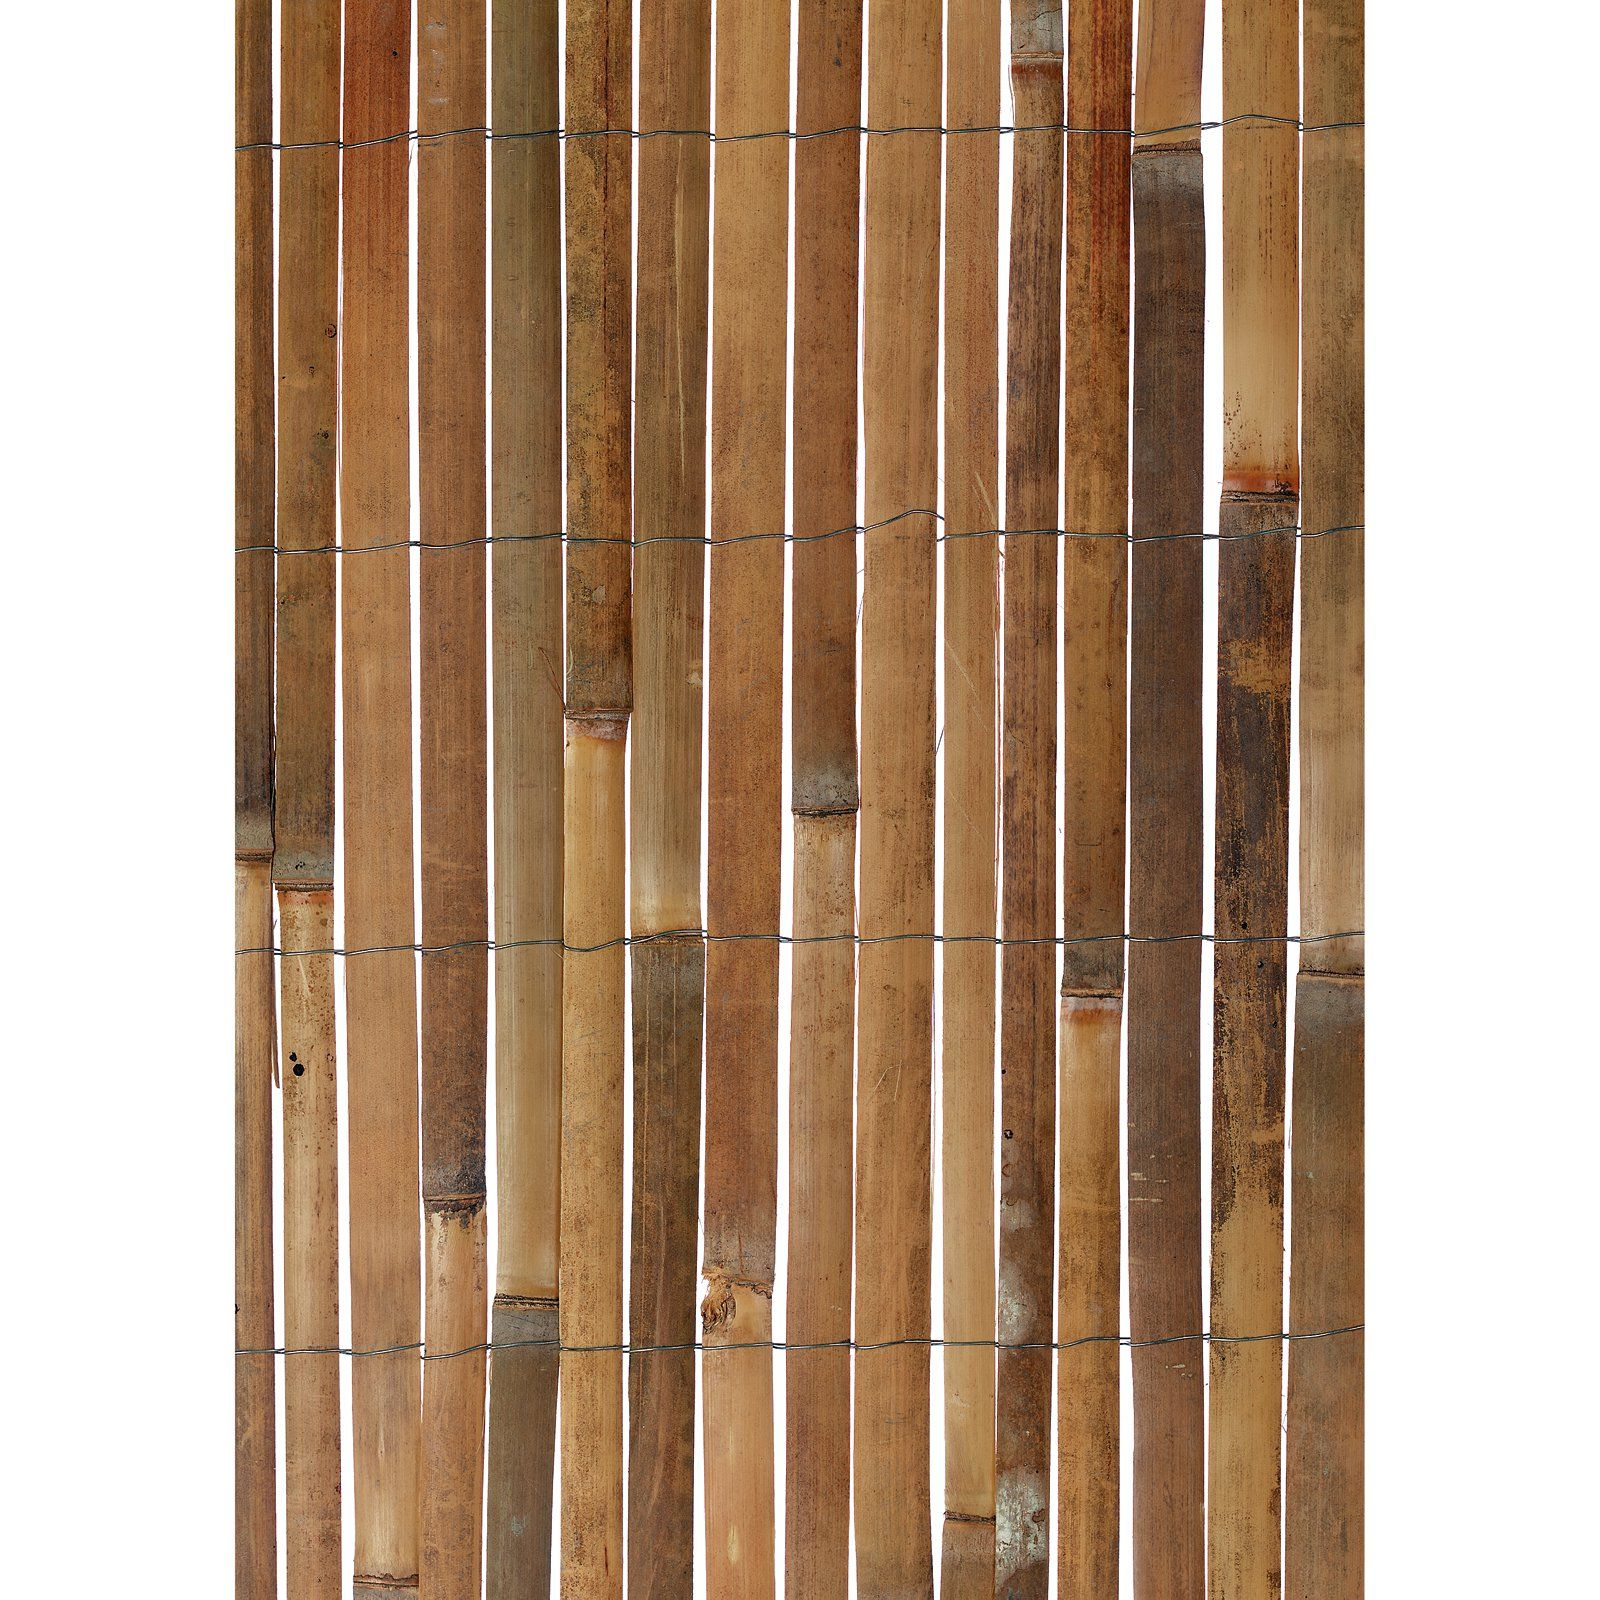 Bamboo Privacy Screens for Back Yard   master:GUI033.jpg   ronnie\'s ...